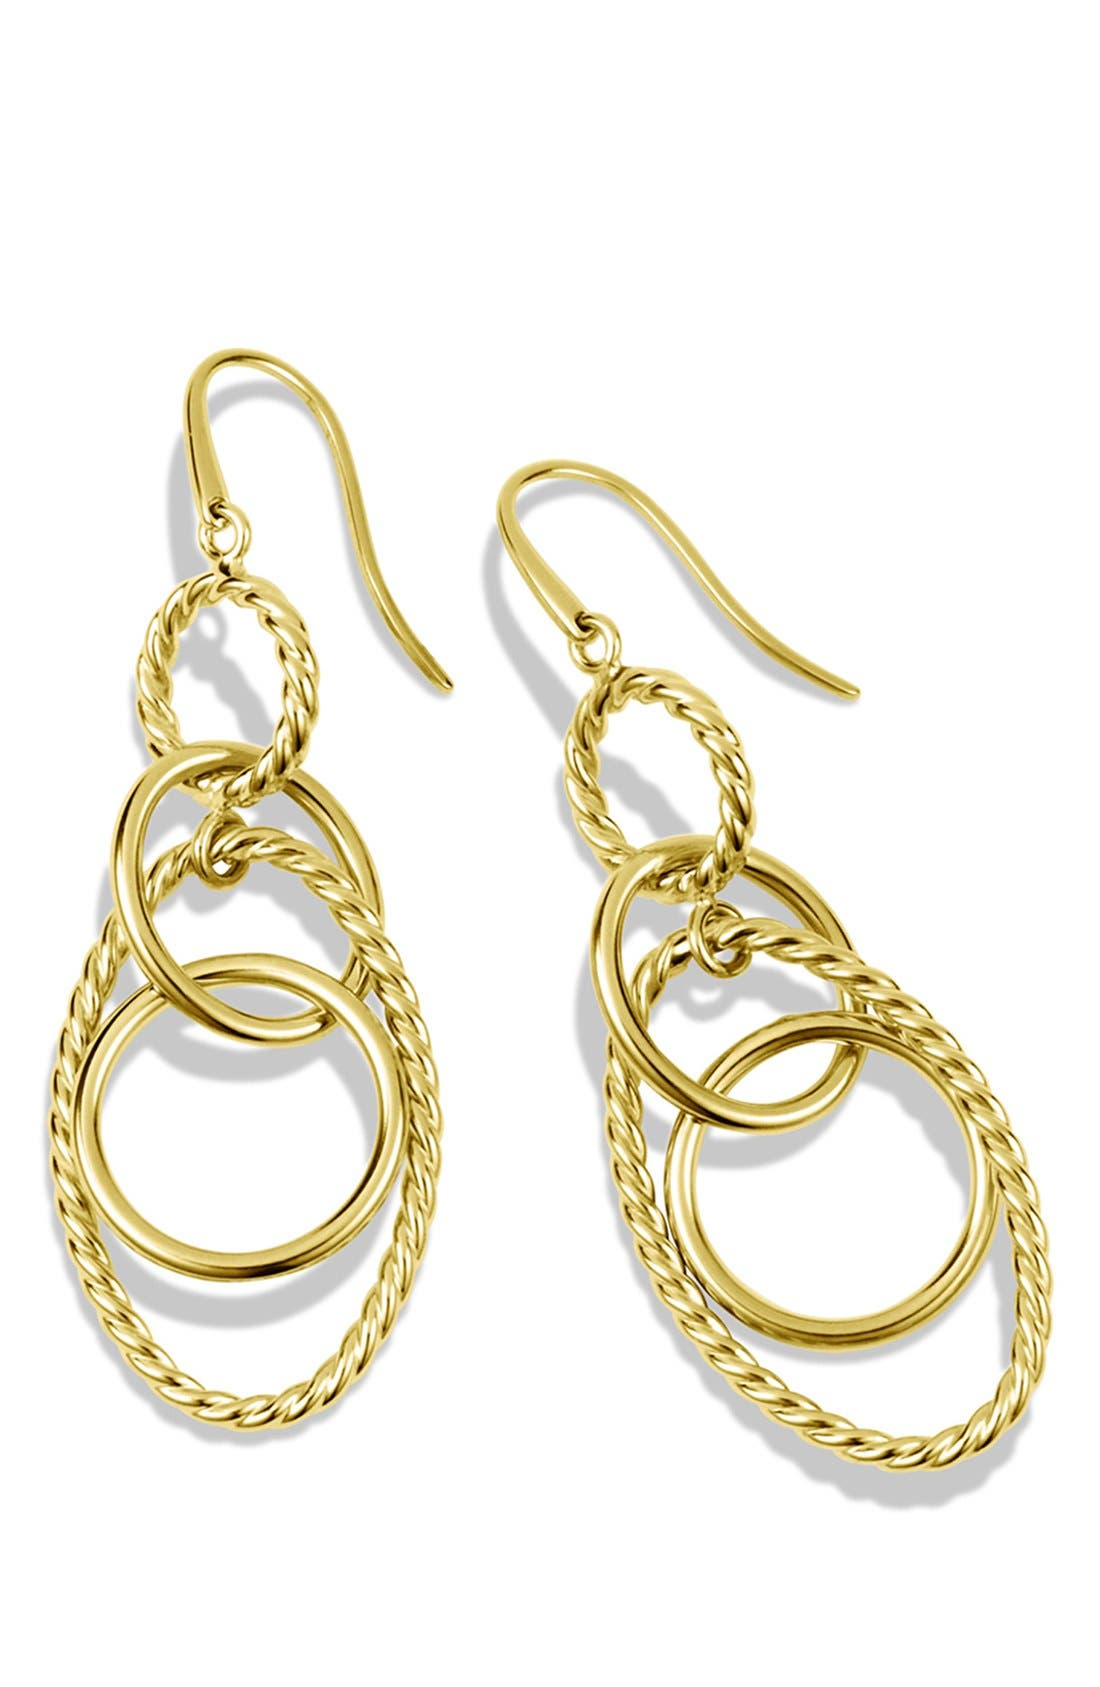 'Mobile' Small Link Earrings in Gold,                             Alternate thumbnail 2, color,                             Gold